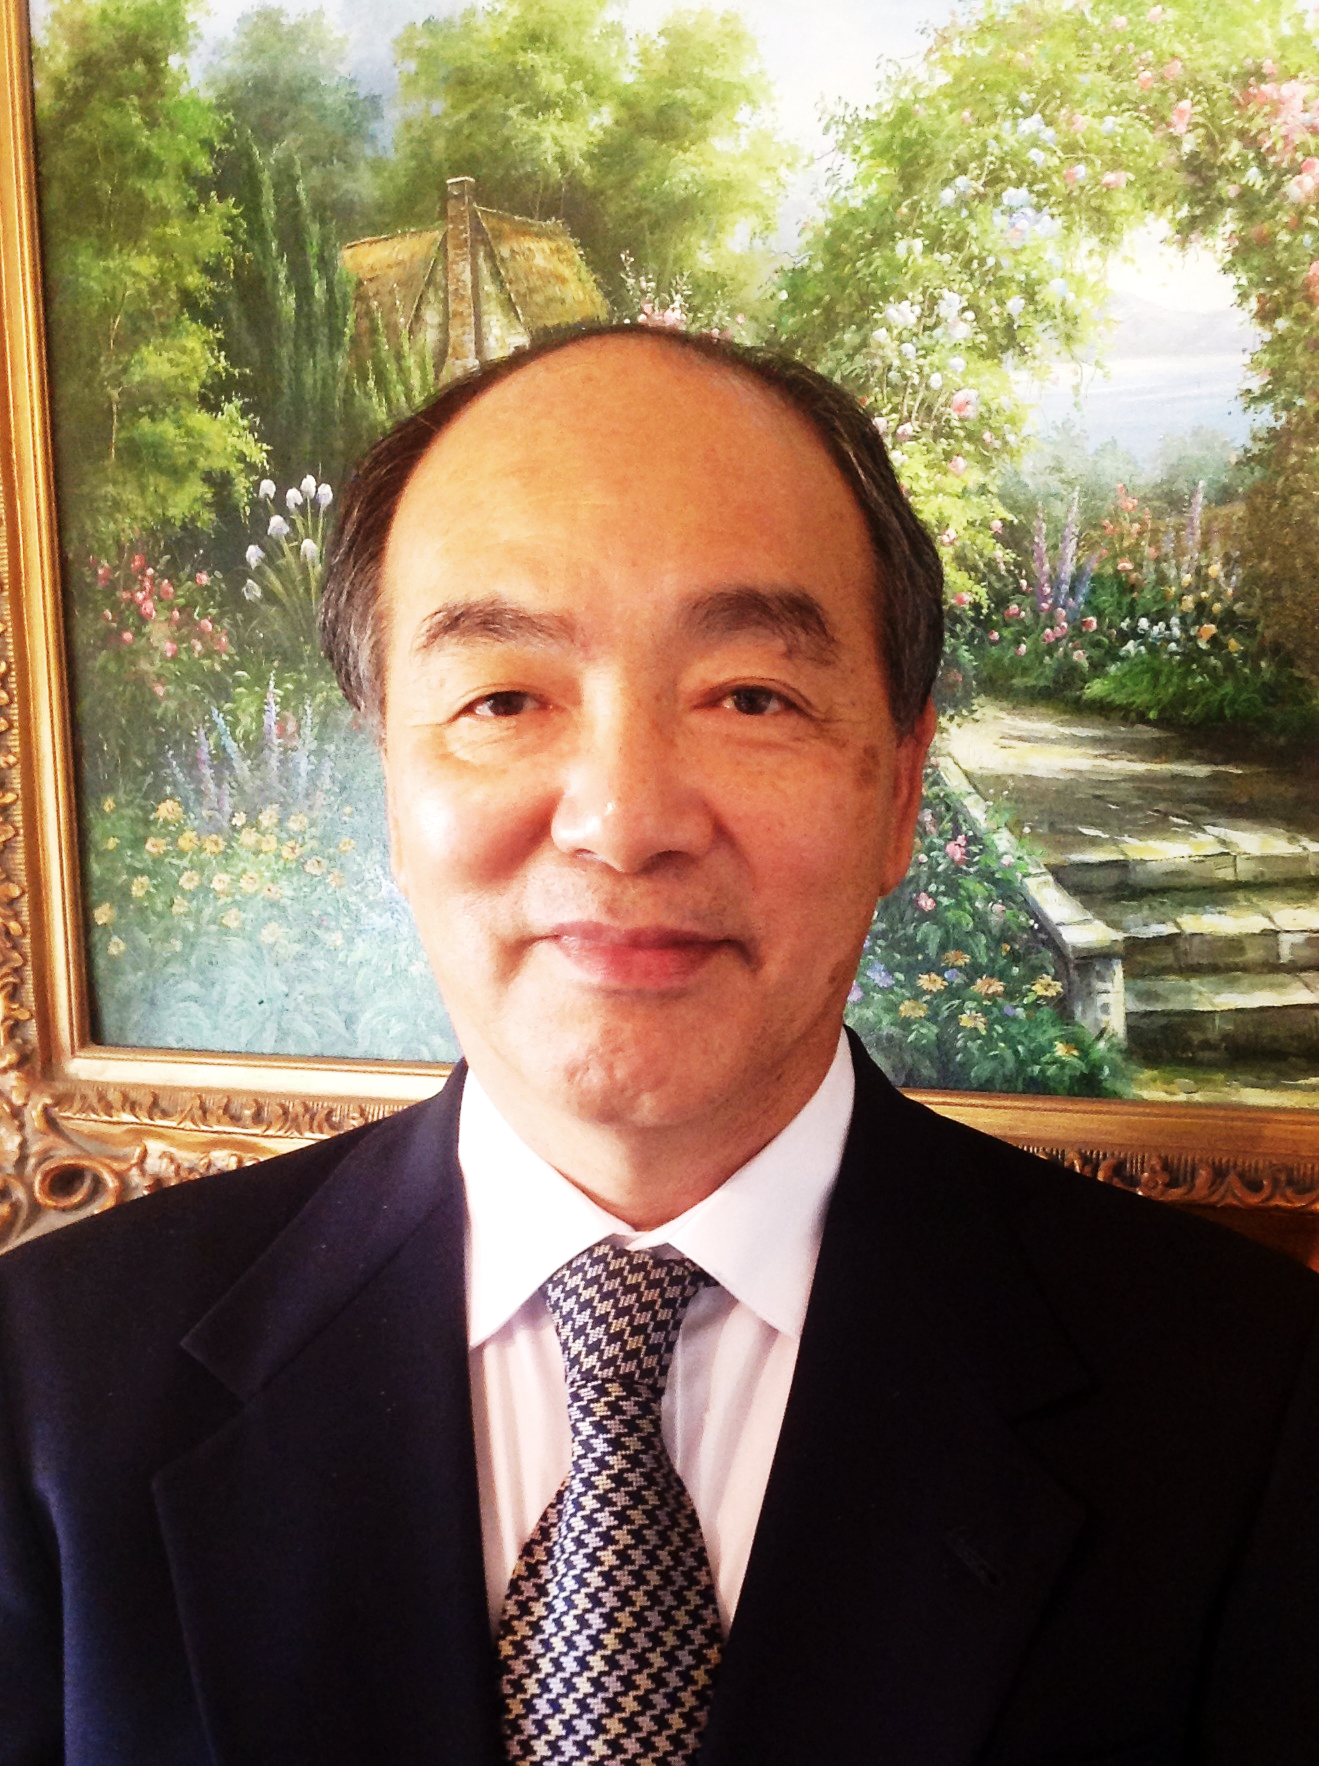 President of China-US Business Association, Ben Lai is 2nd G.O.D.'s Chinese Humanitarian Ambassador